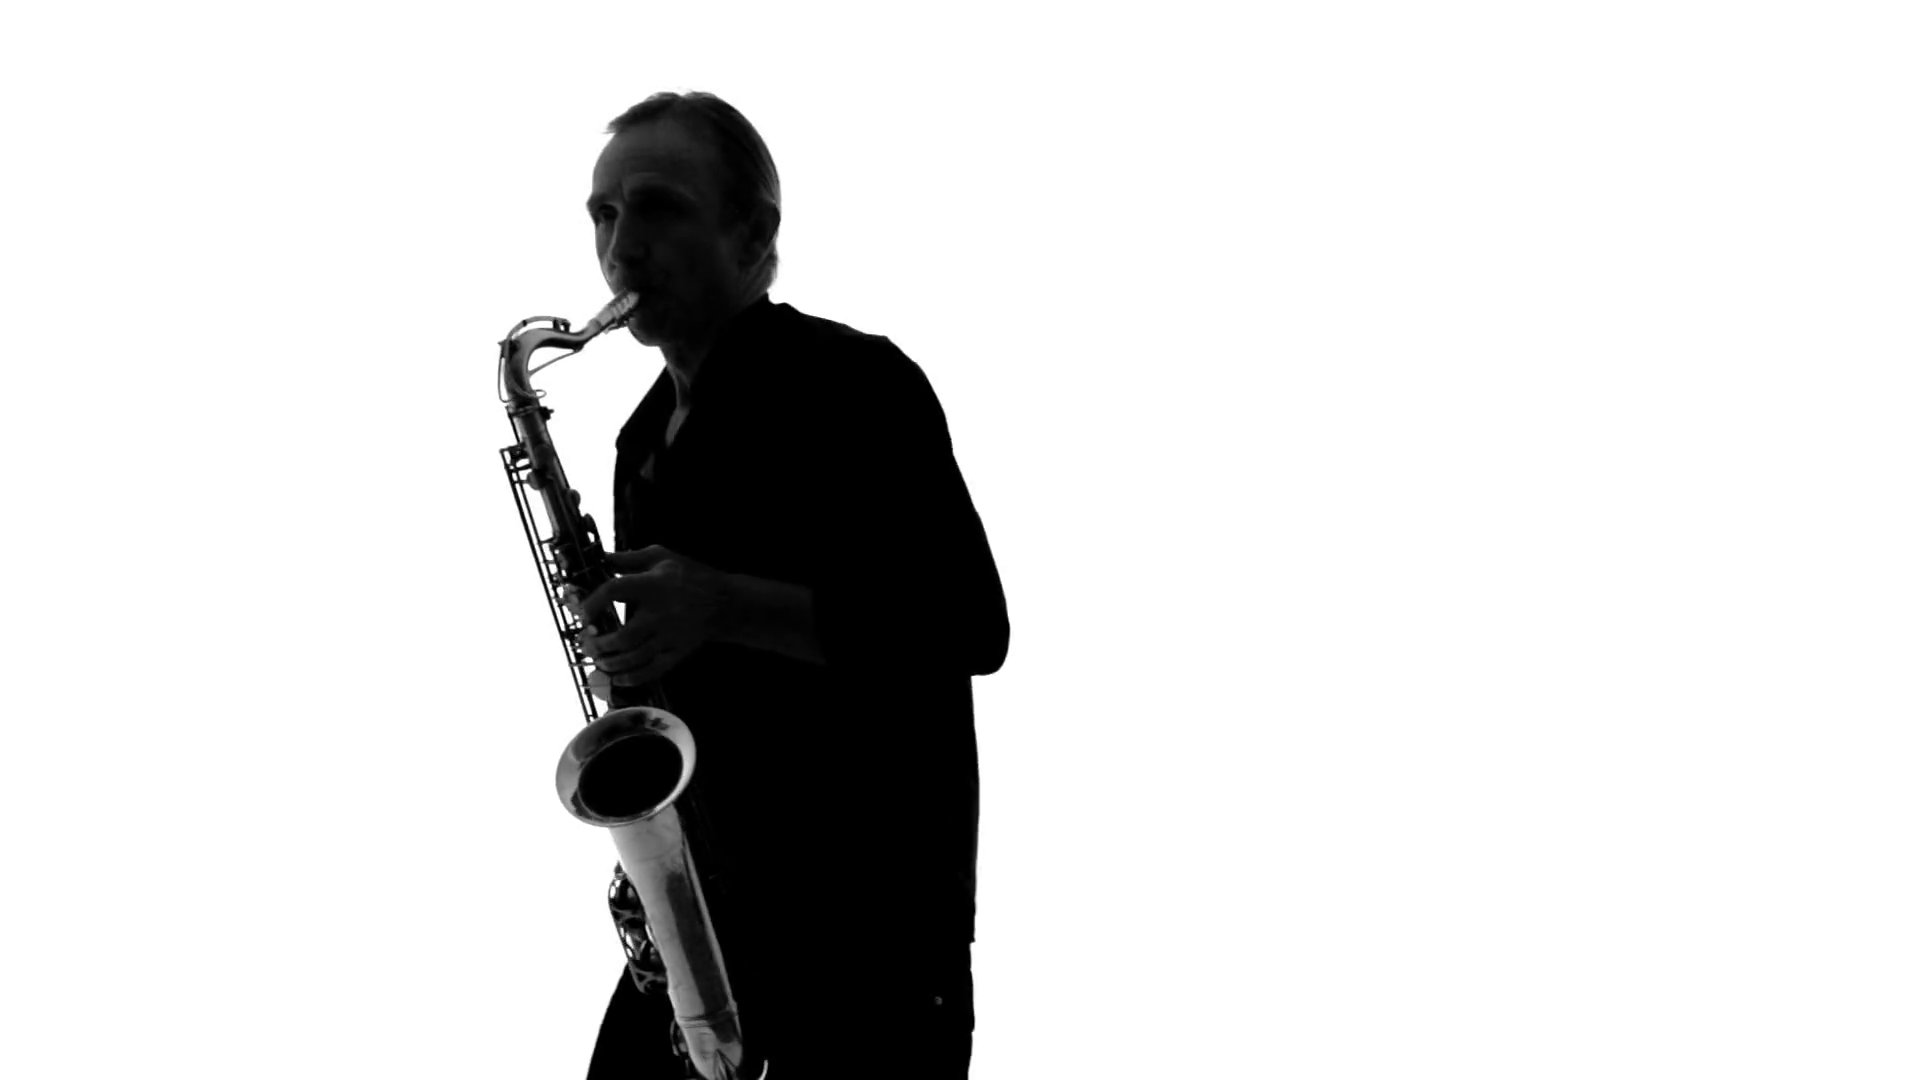 1920x1080 Close Up Of Silhouette Of Musician Playing The Saxophone On